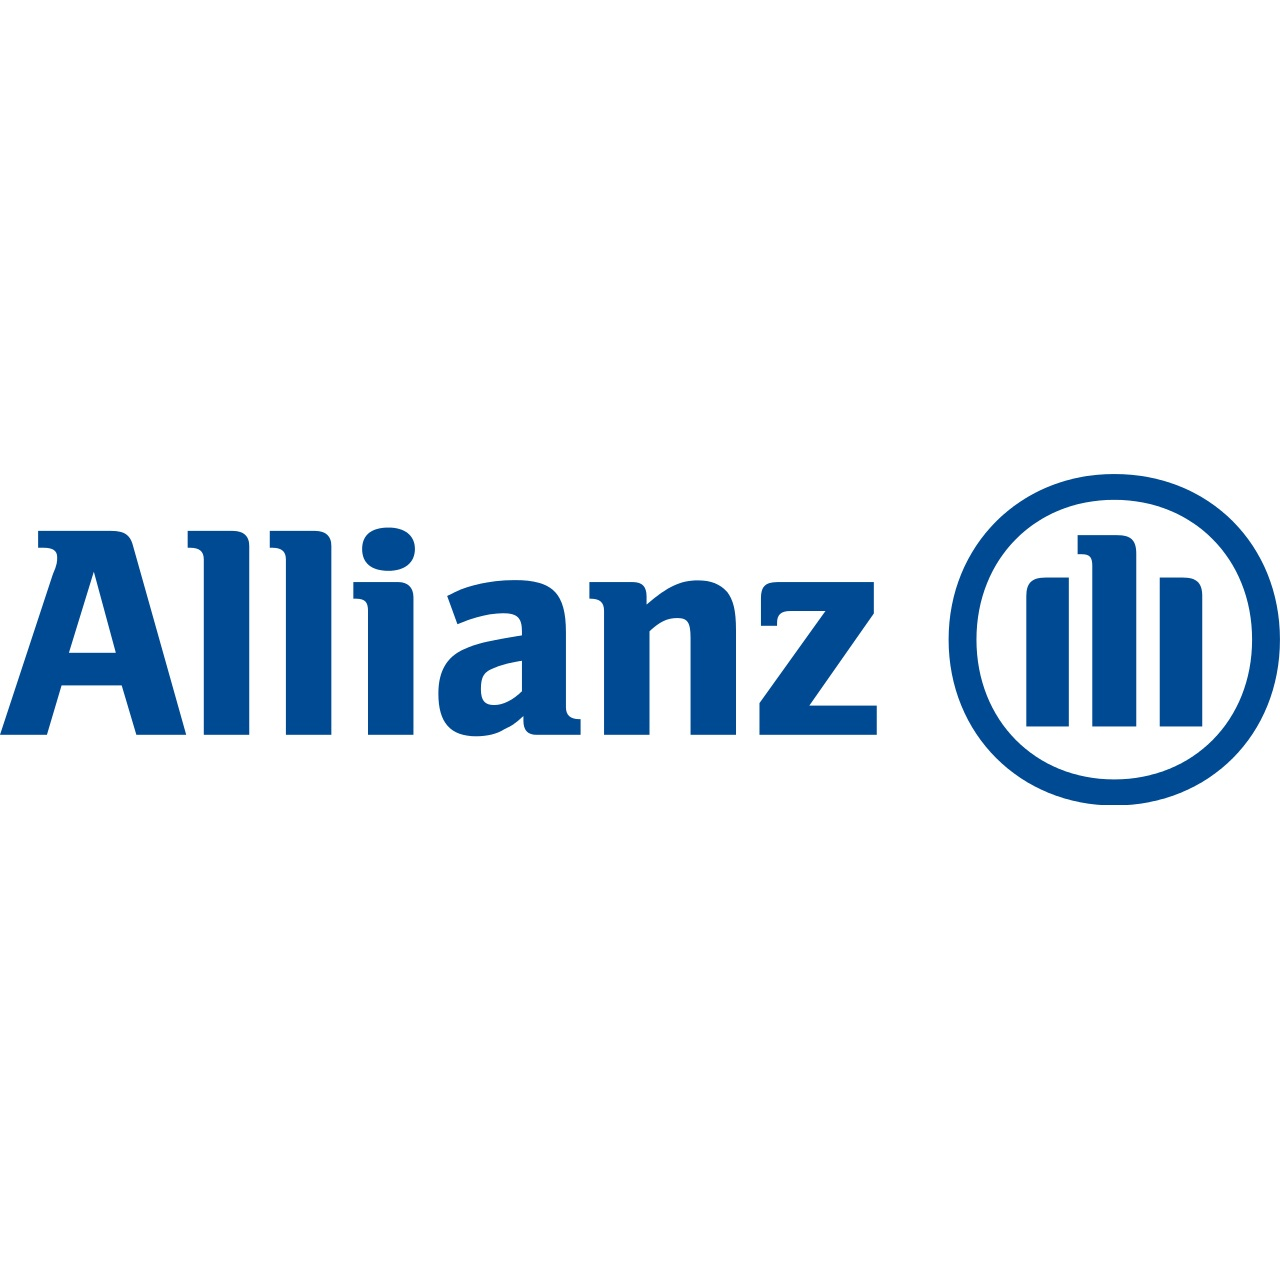 allianz valeria cagnina francesco baldassarre ofpassion parigi monaco speaker